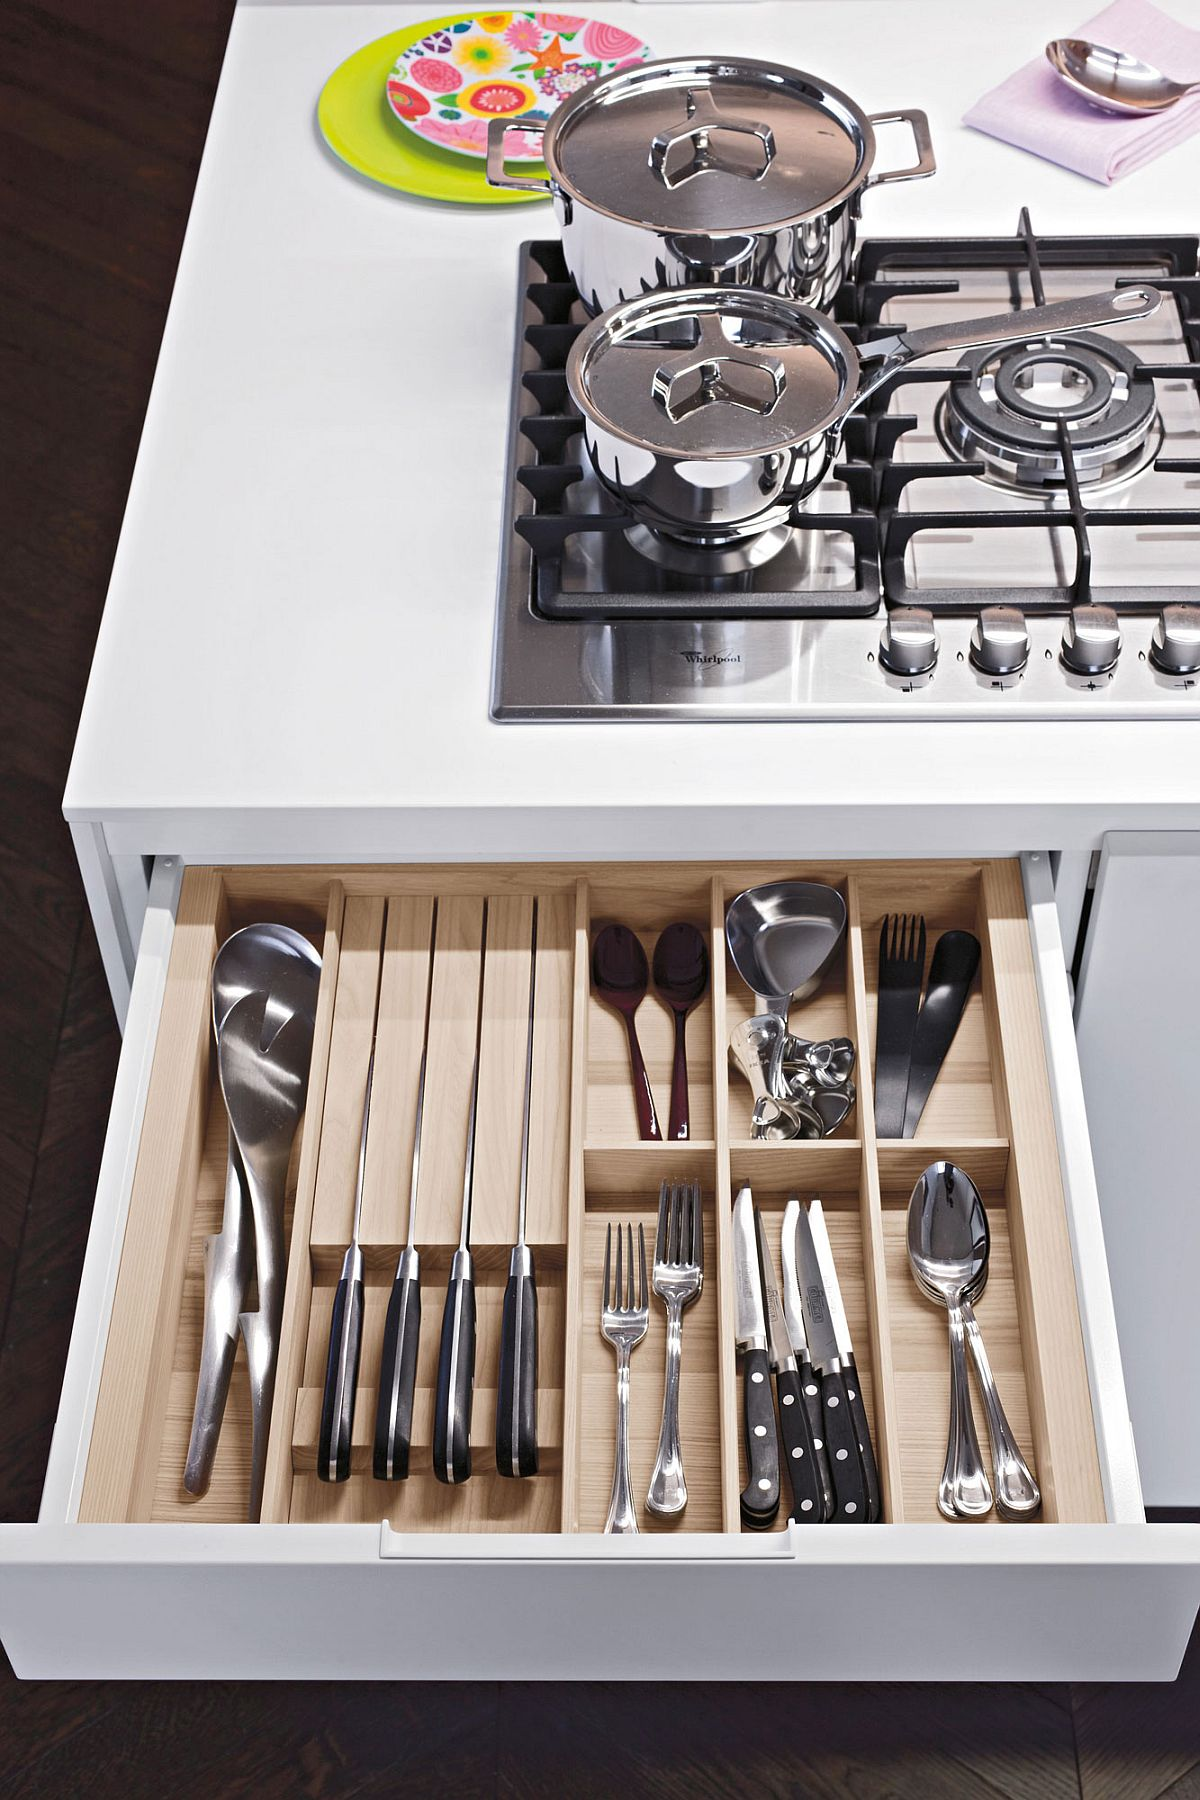 Custom accessories available for the Heritage range of Kitchens